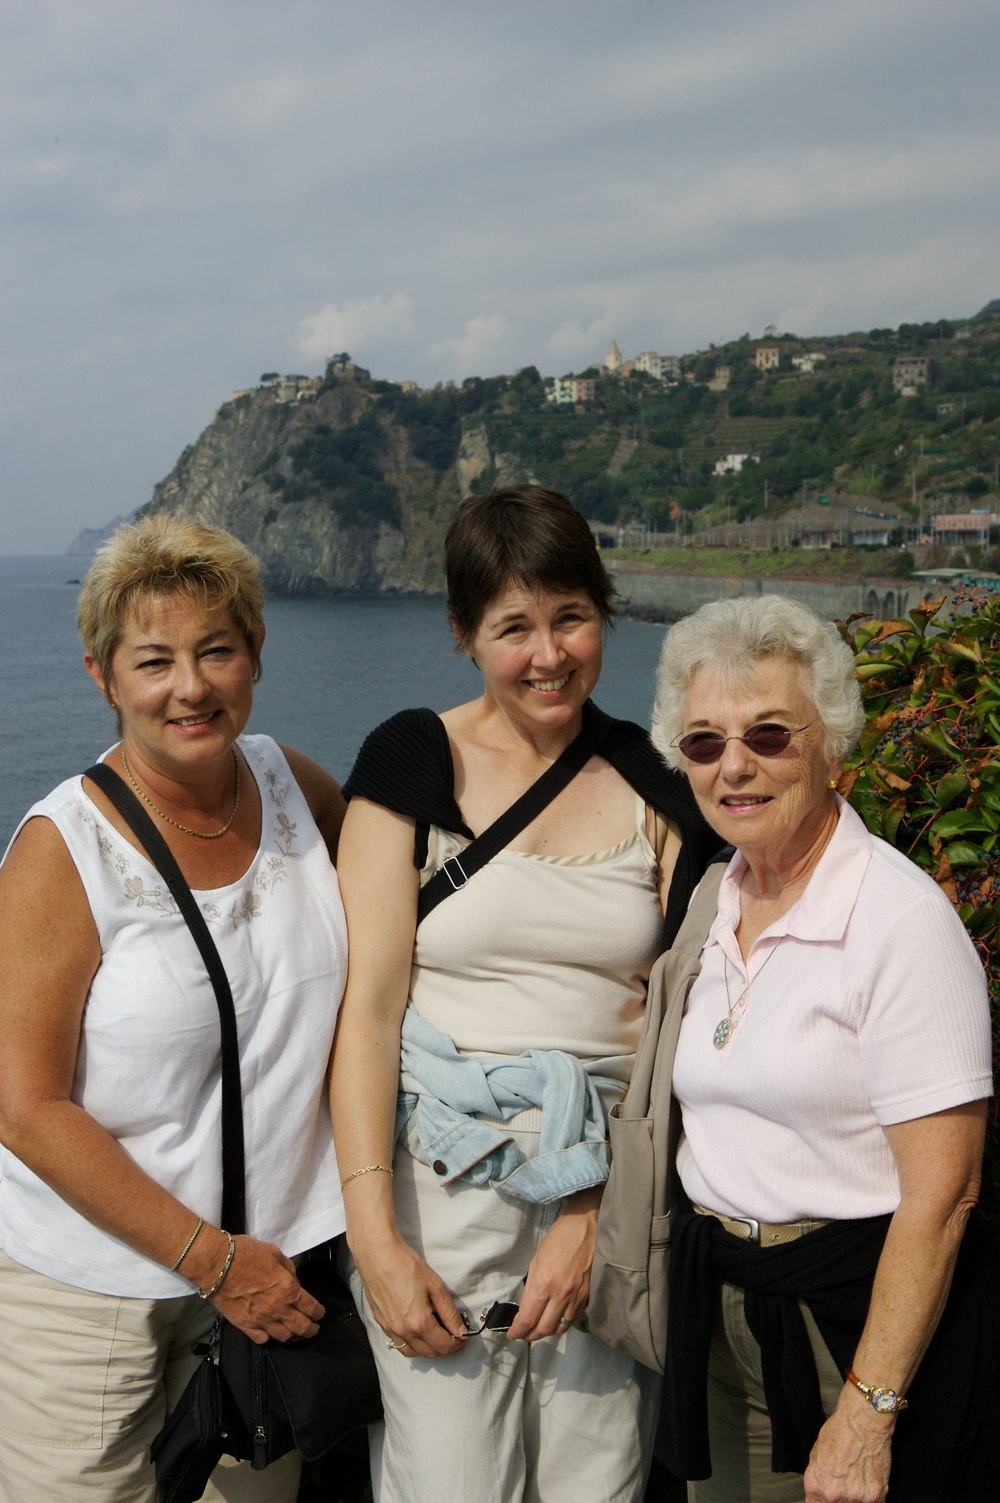 Photos from Vernazza and the Cinque Terre, Italy, September 2004.